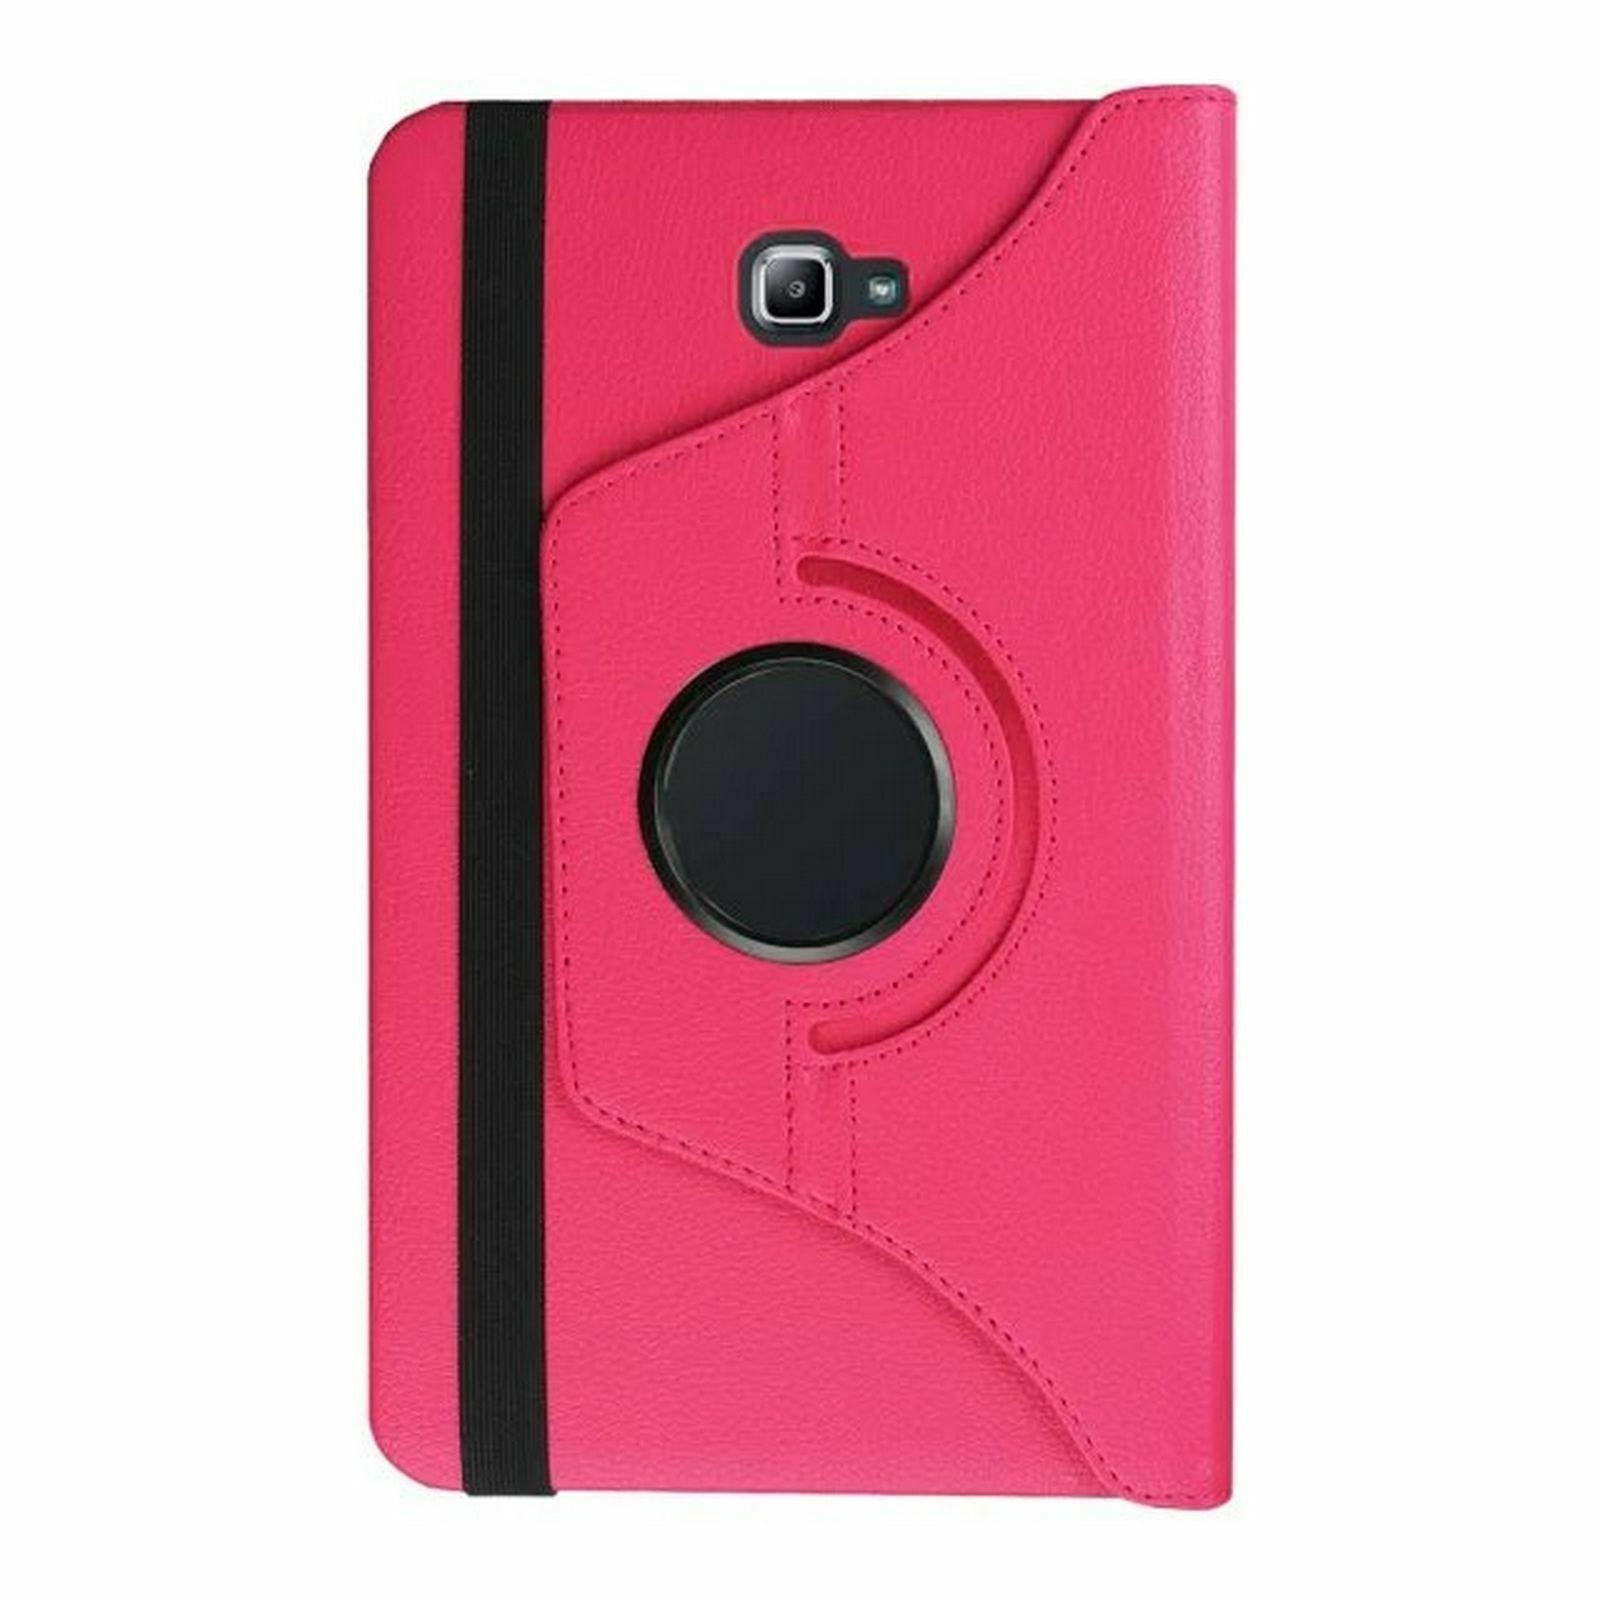 thumbnail 20 - Cover-For-Samsung-Galaxy-Tab-A-2016-10-1-SM-T580-SM-T585-Case-Pouch-Case